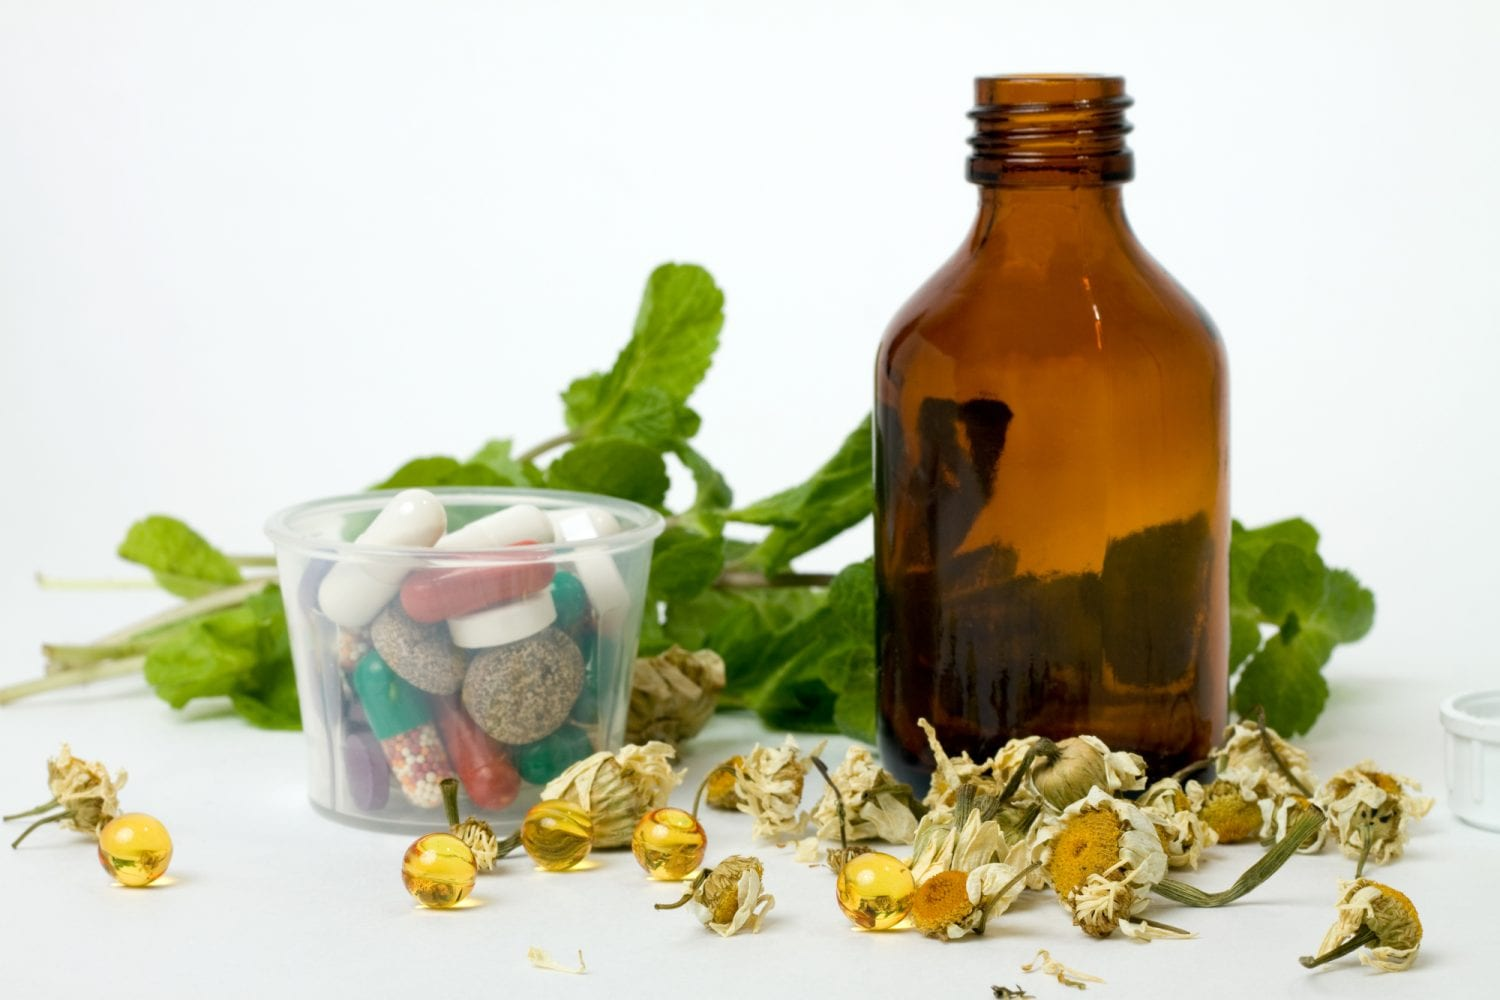 who should use herbal antibiotics?